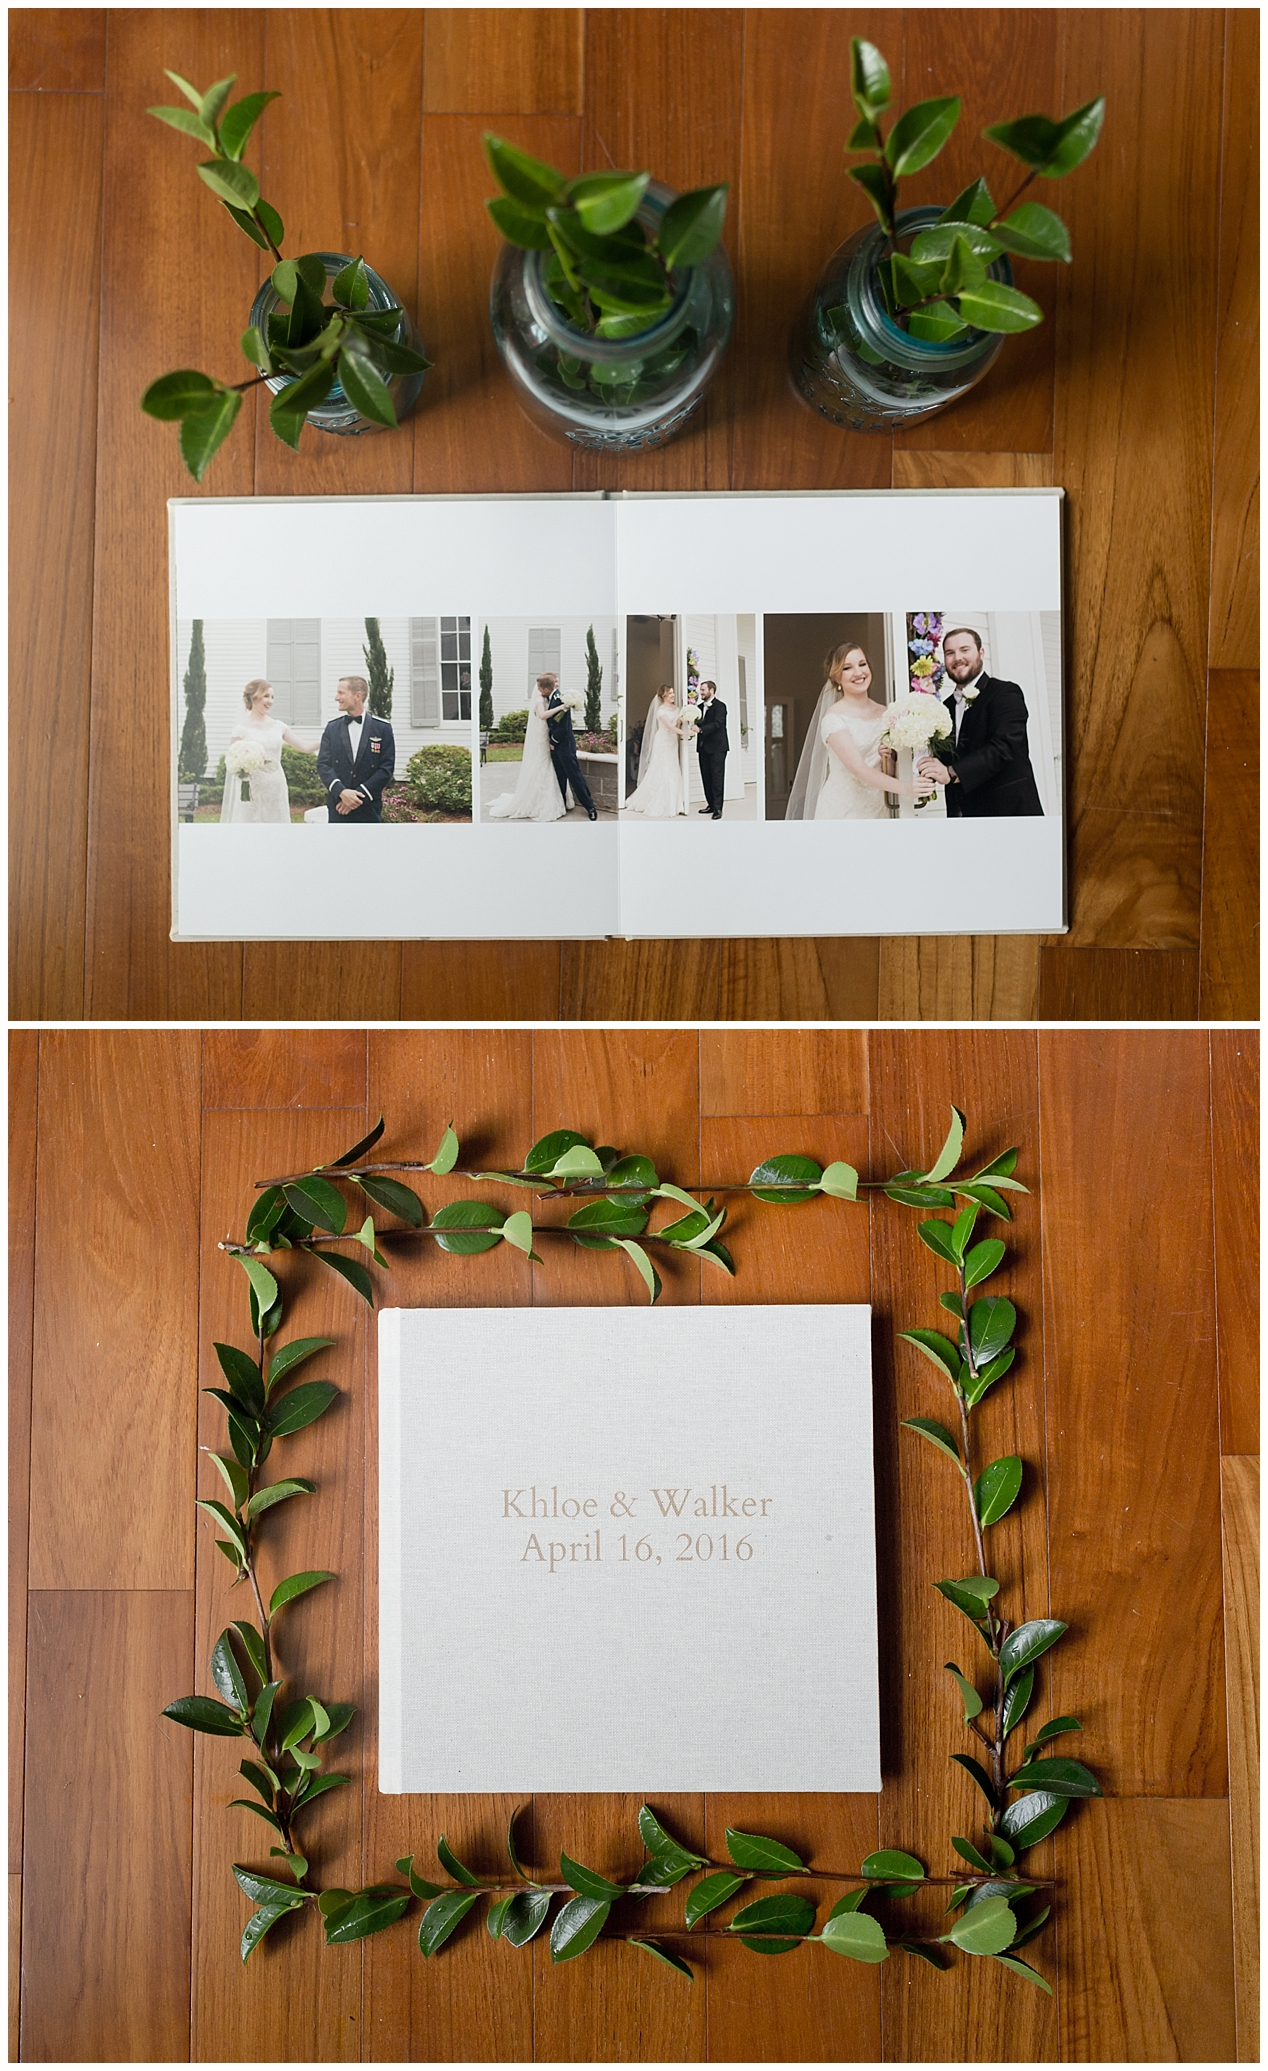 wedding photography in Ocean Springs, Mississippi - wedding albums